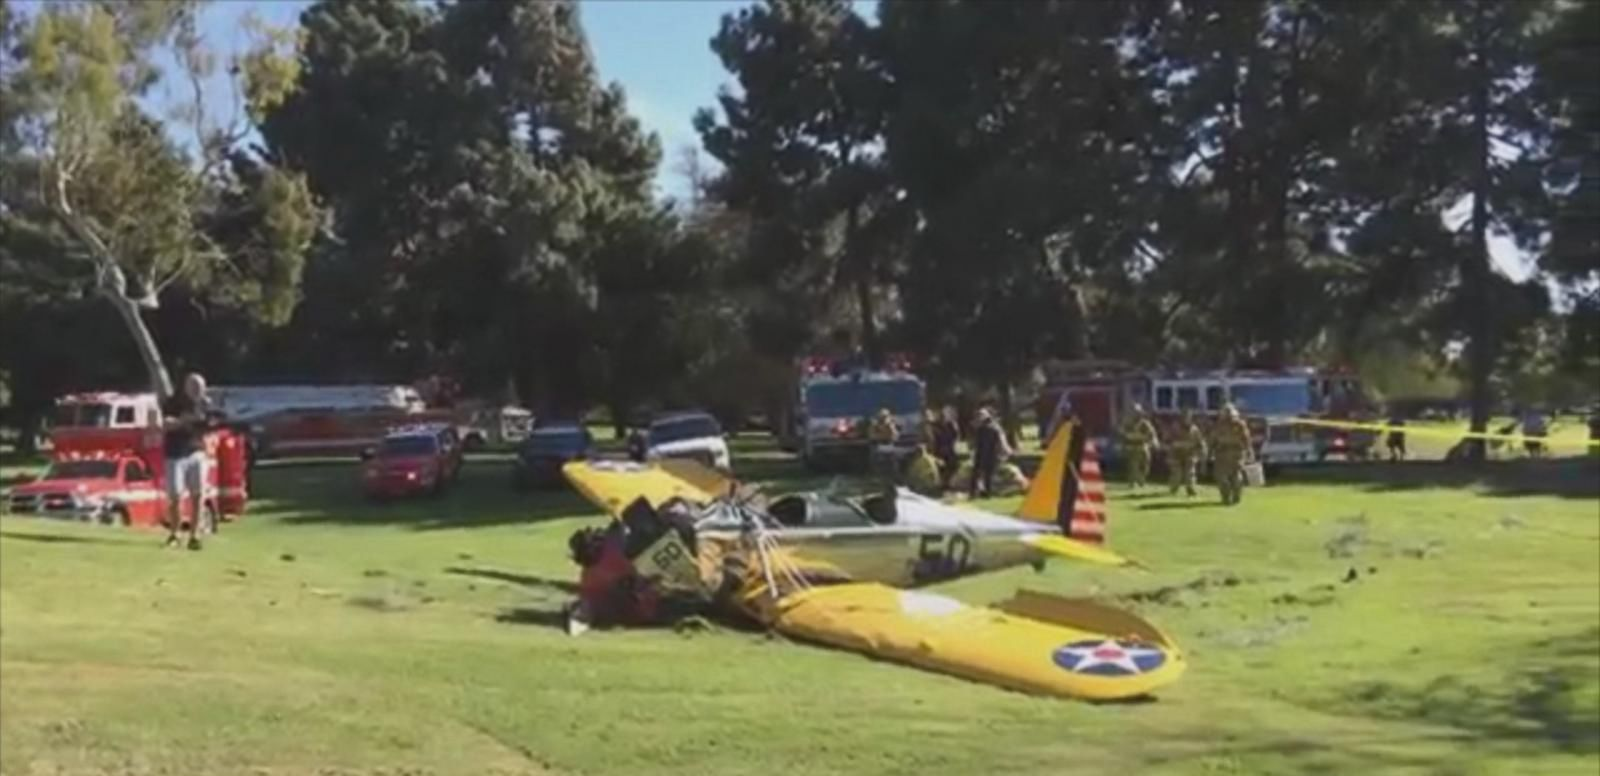 VIDEO: ABC News' Nick Watt has an update on the legendary actor's condition after his plane crash landed on a golf course in Southern California.